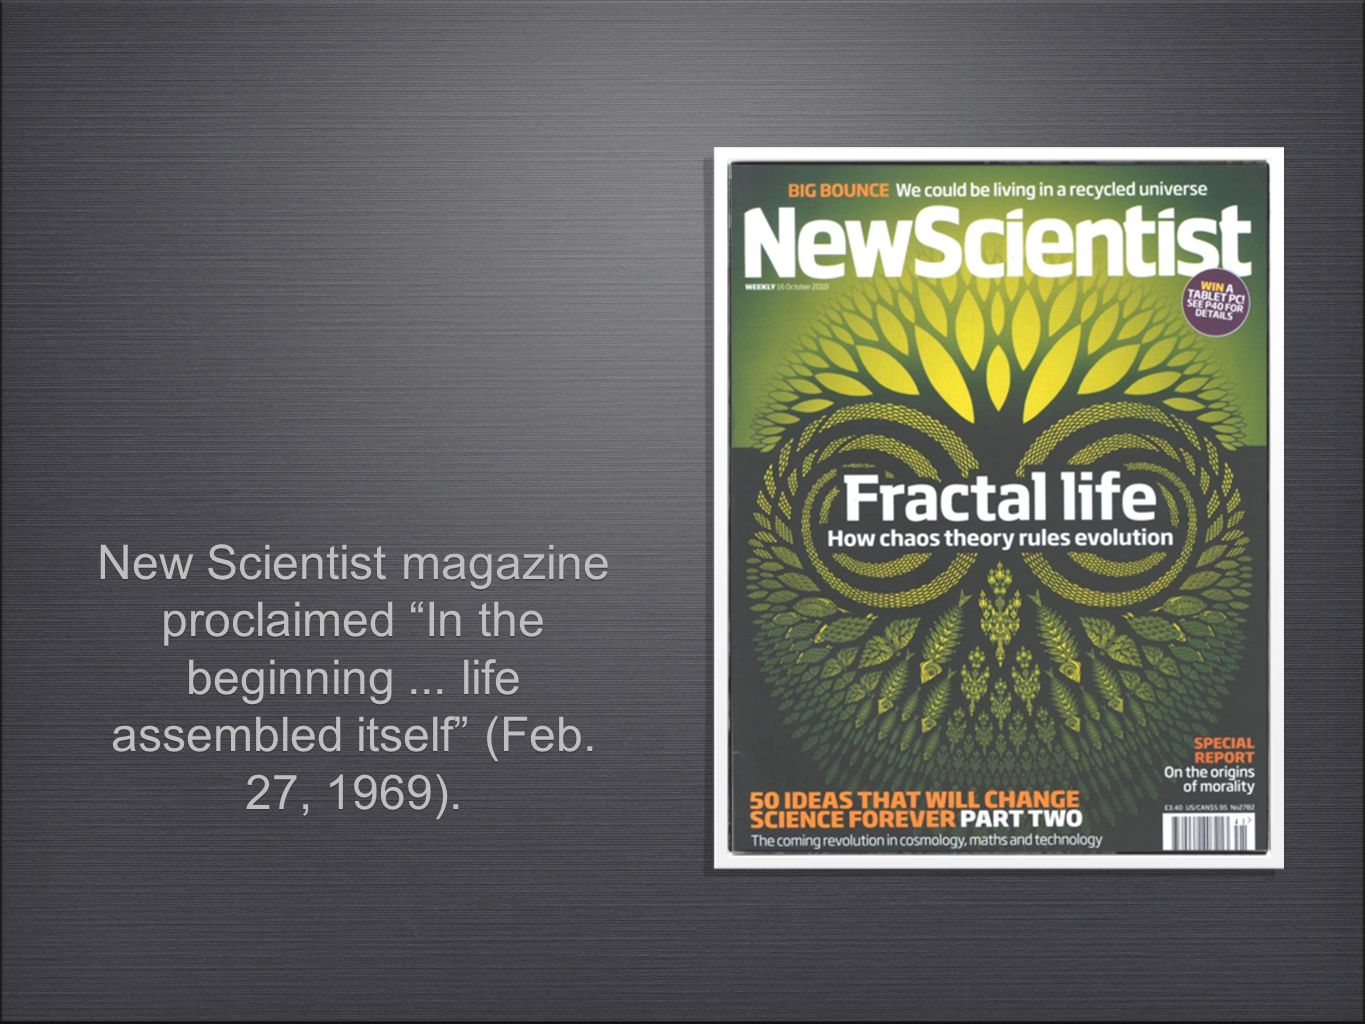 New Scientist magazine proclaimed In the beginning... life assembled itself (Feb. 27, 1969).